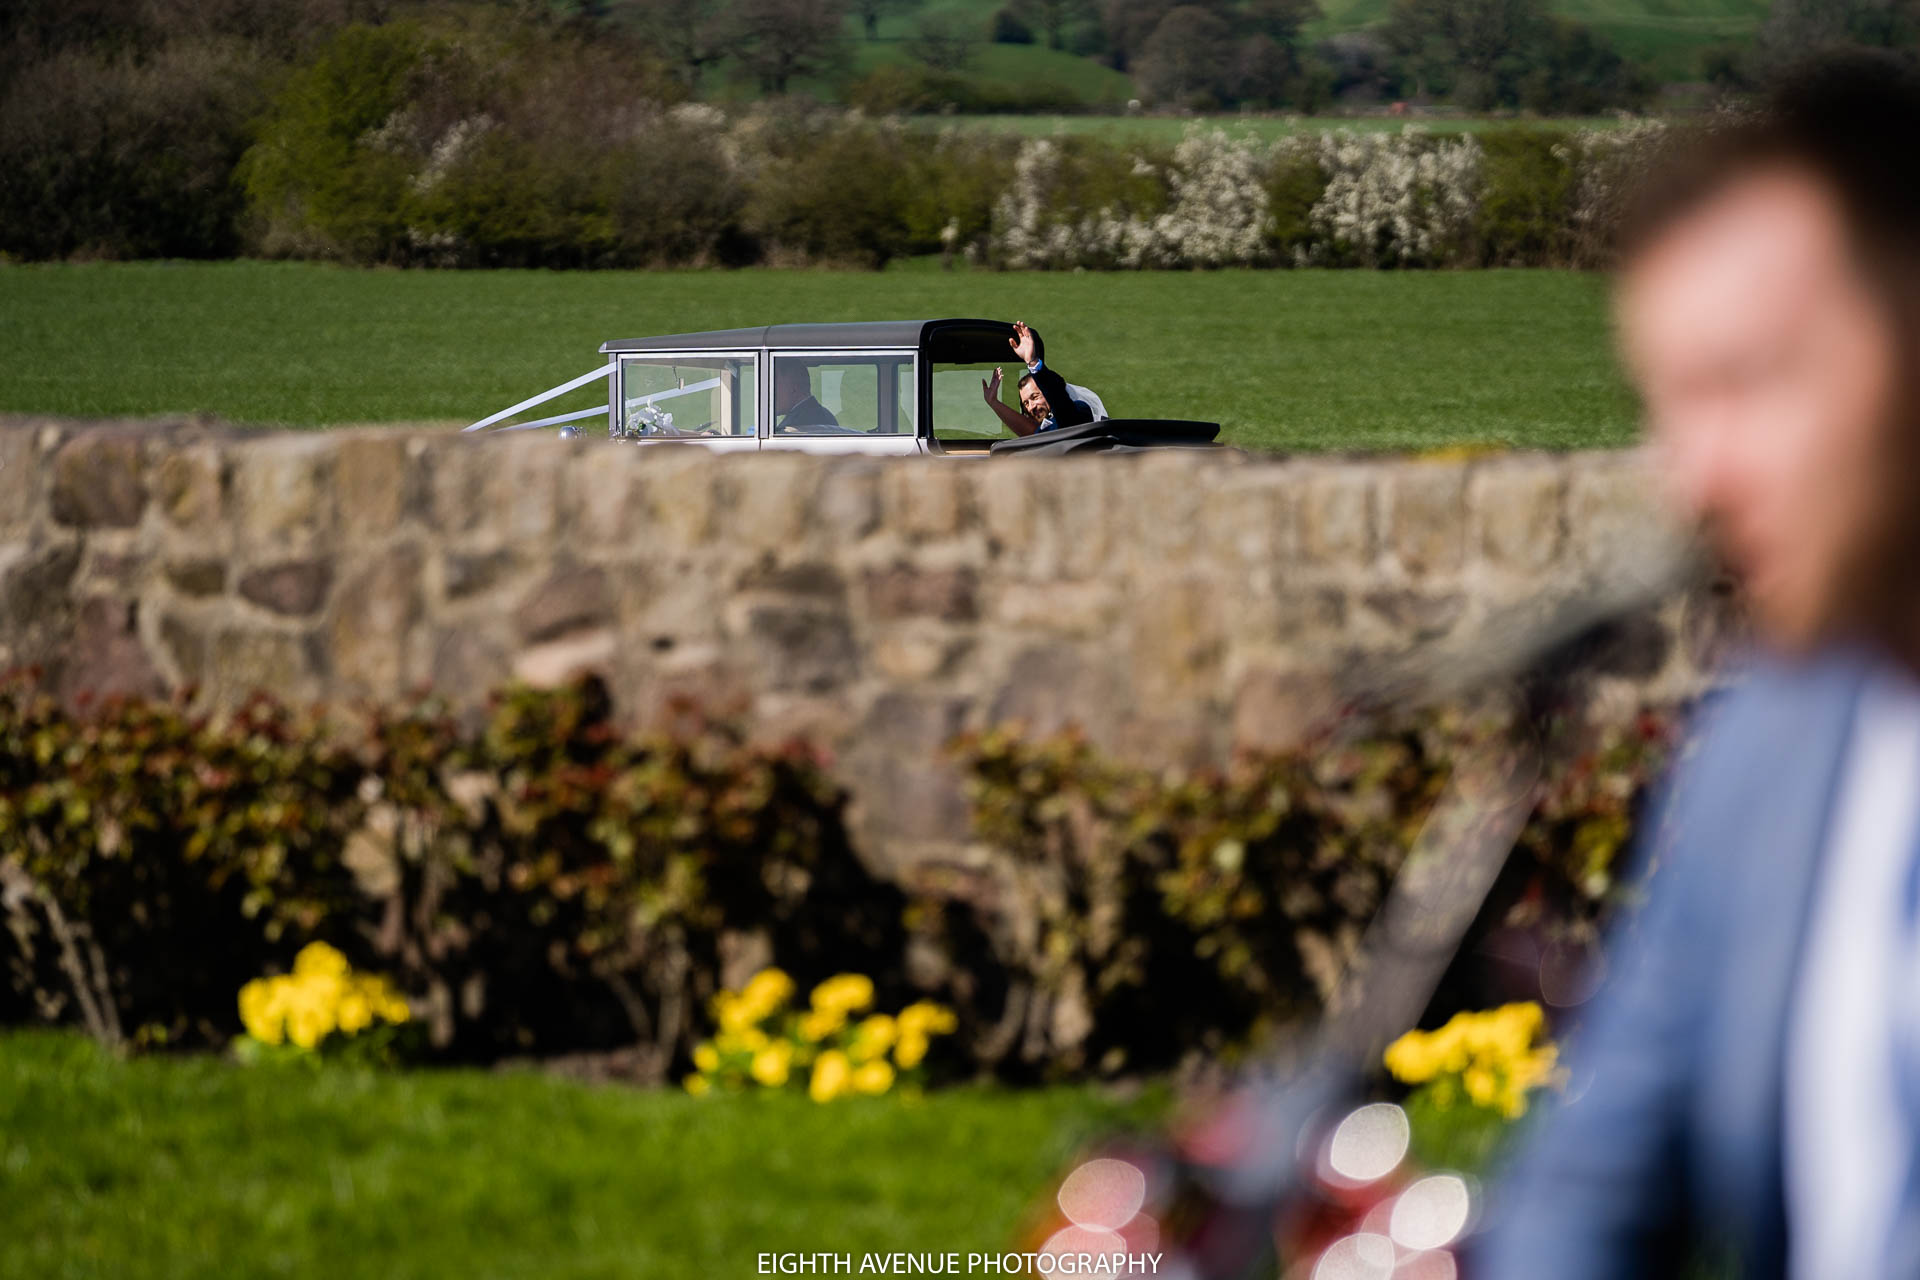 Bride and groom in car at wedding